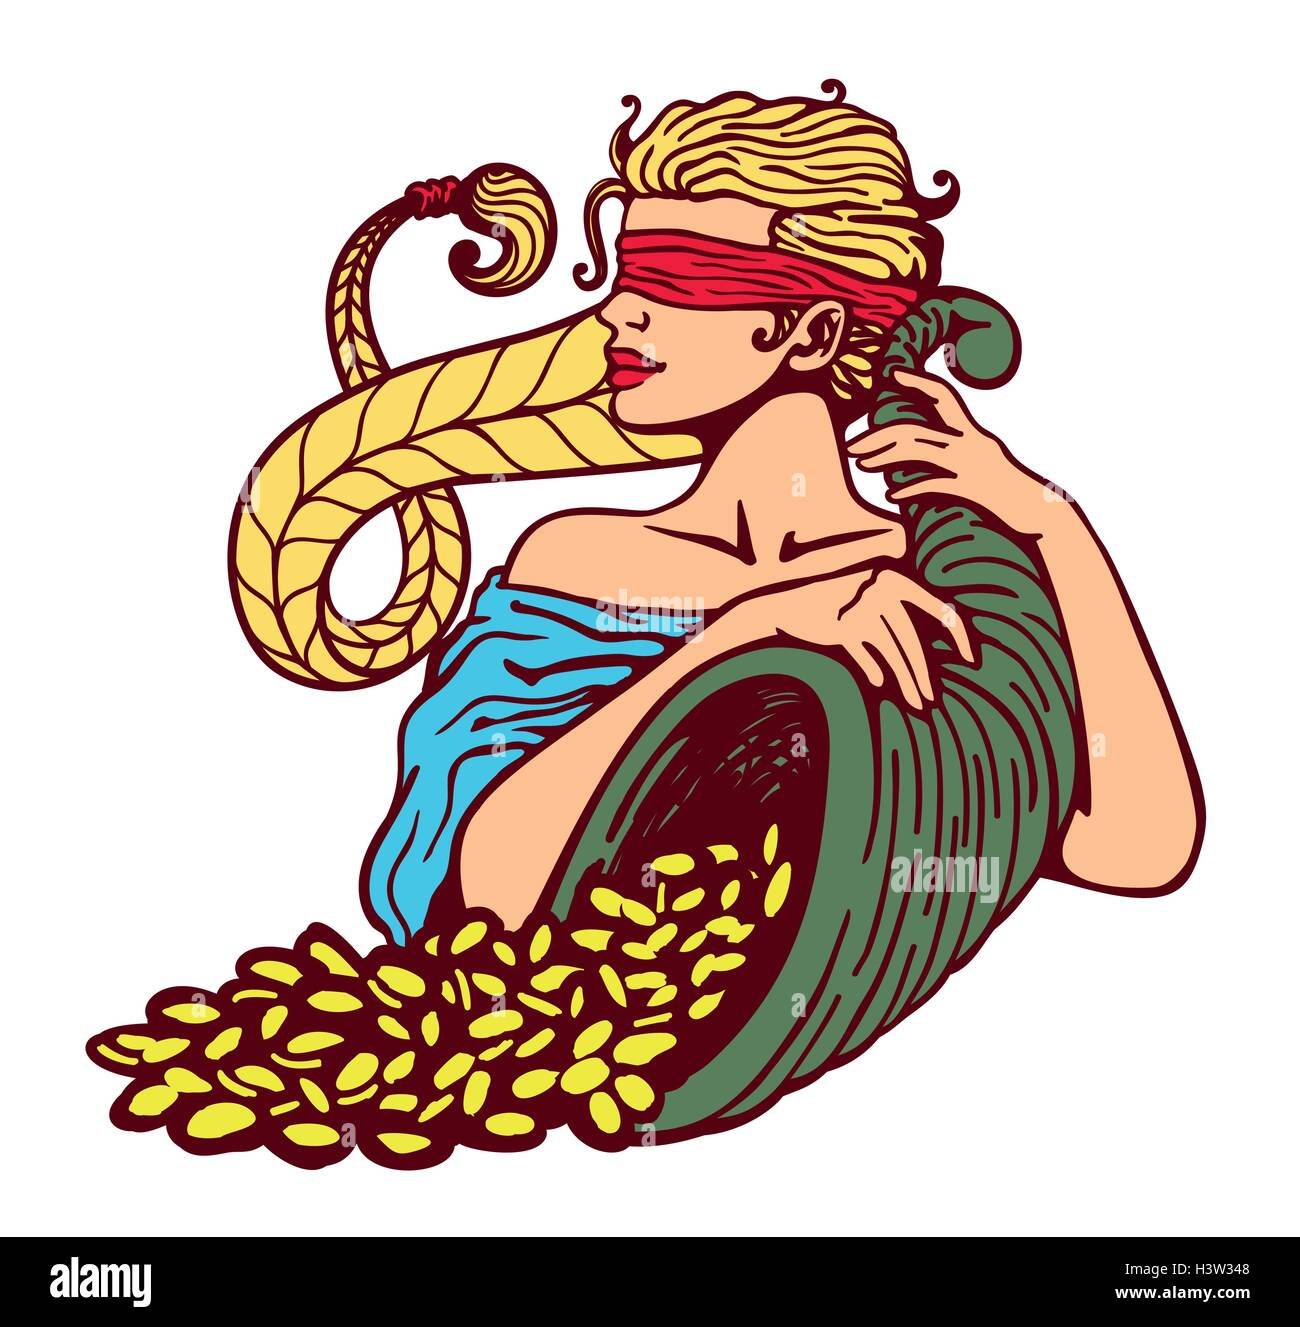 Blindfolded goddess of fortune holding cornucopia horn of plenty full of gold coins, good luck charm, lottery winning, - Stock Vector